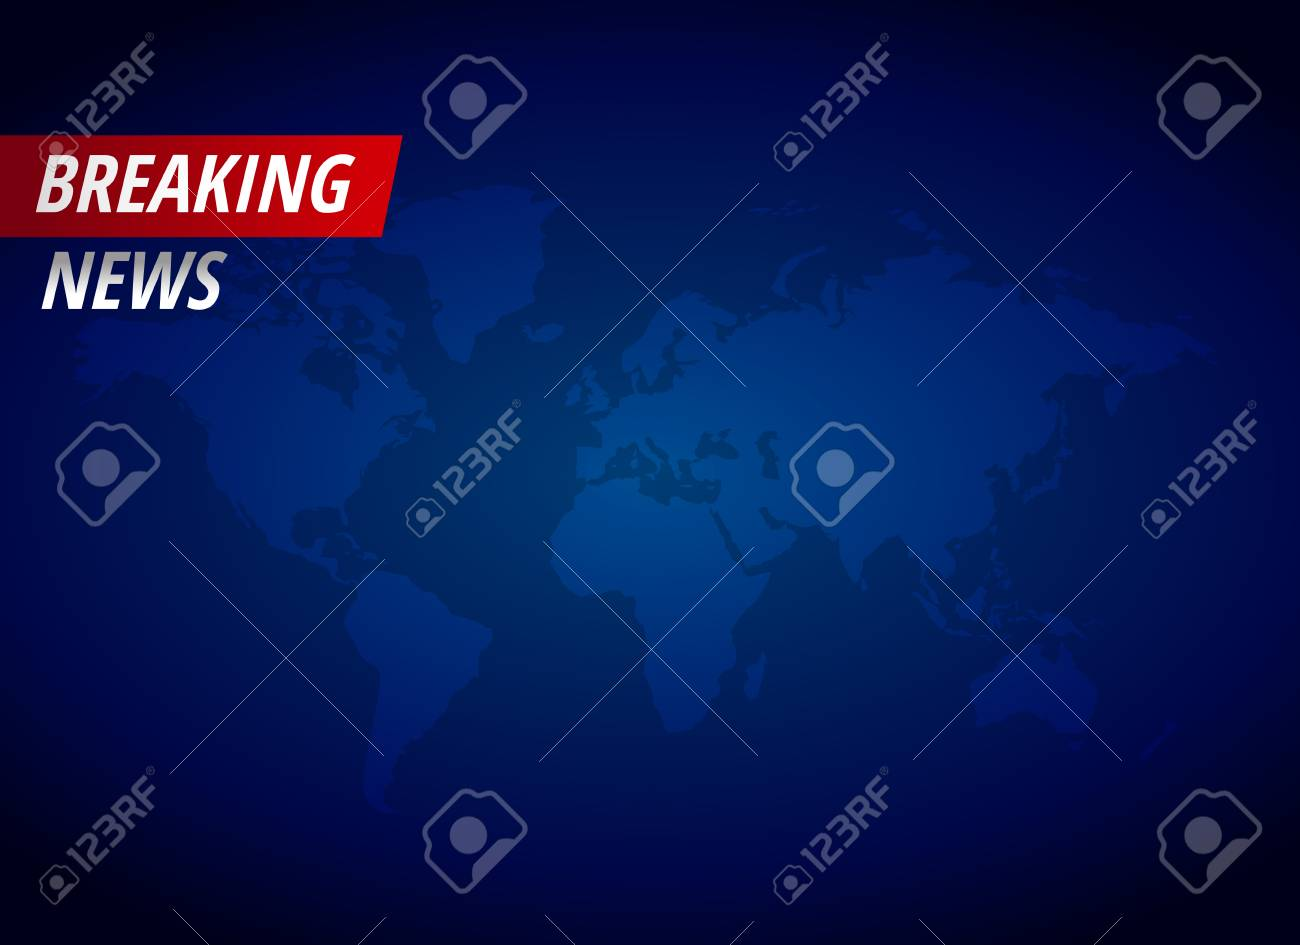 Breaking news background with text space - 97074517